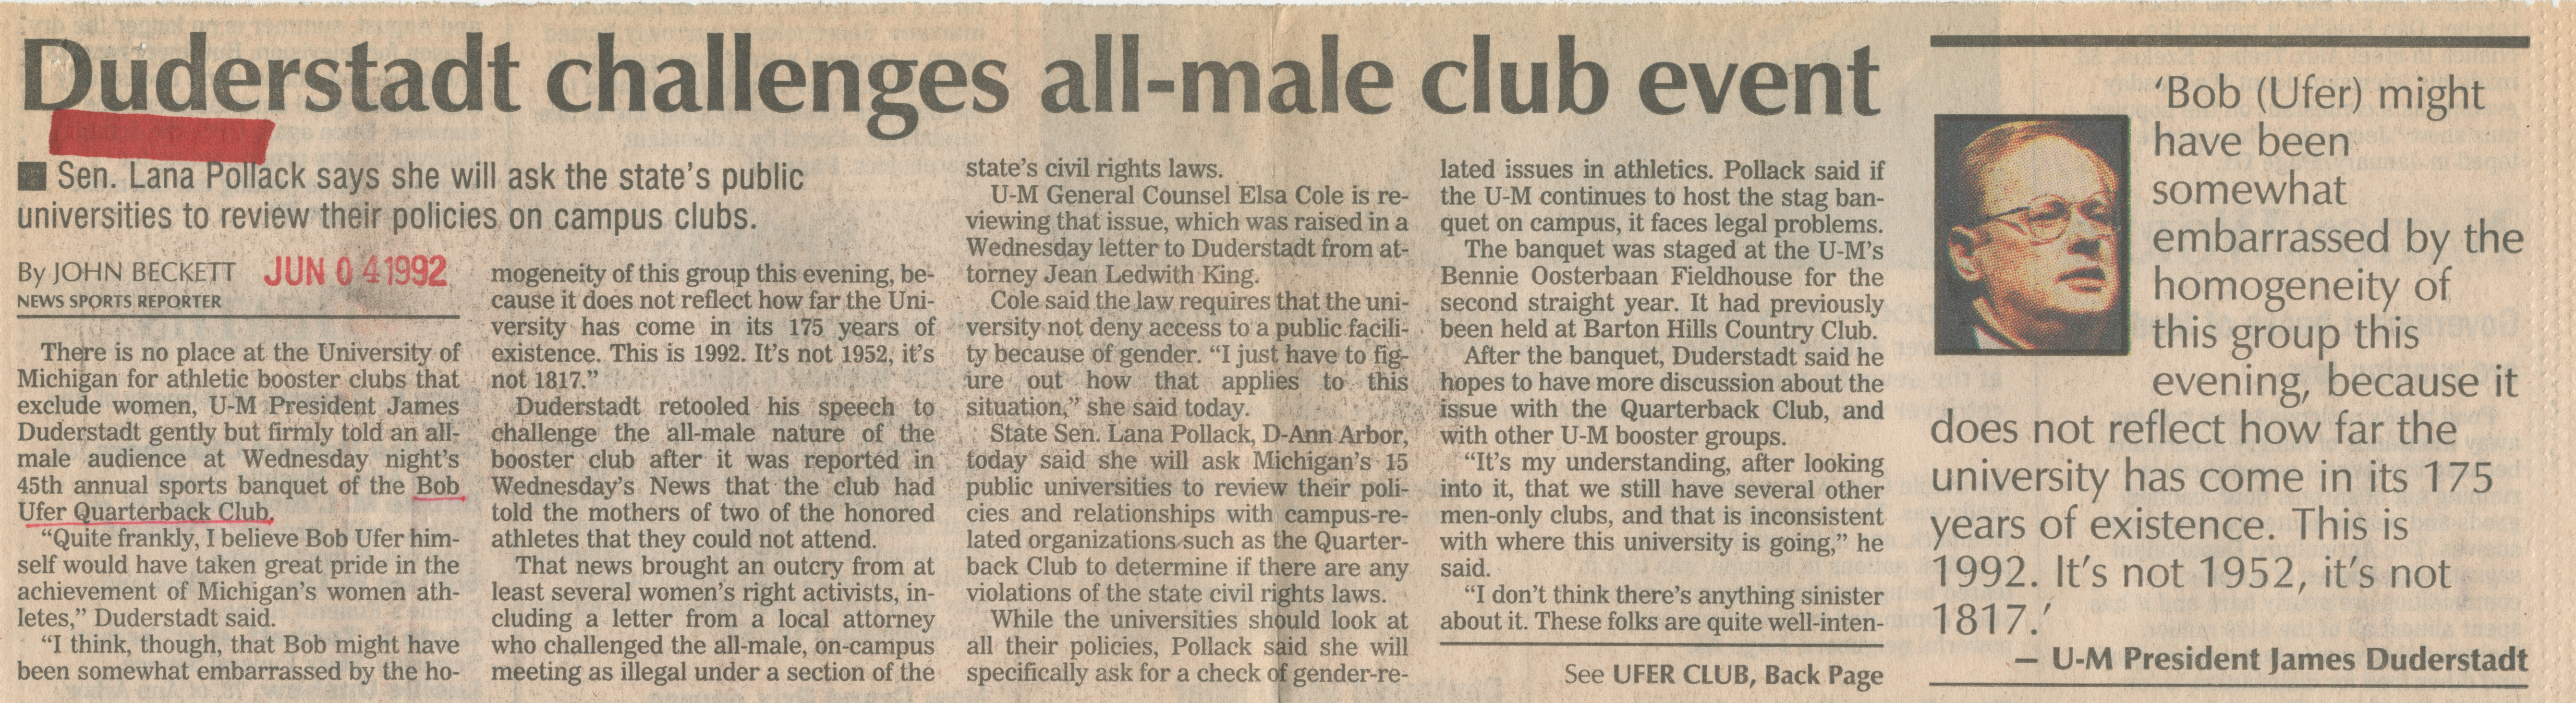 Duderstadt Challenges All-Male Club Event image